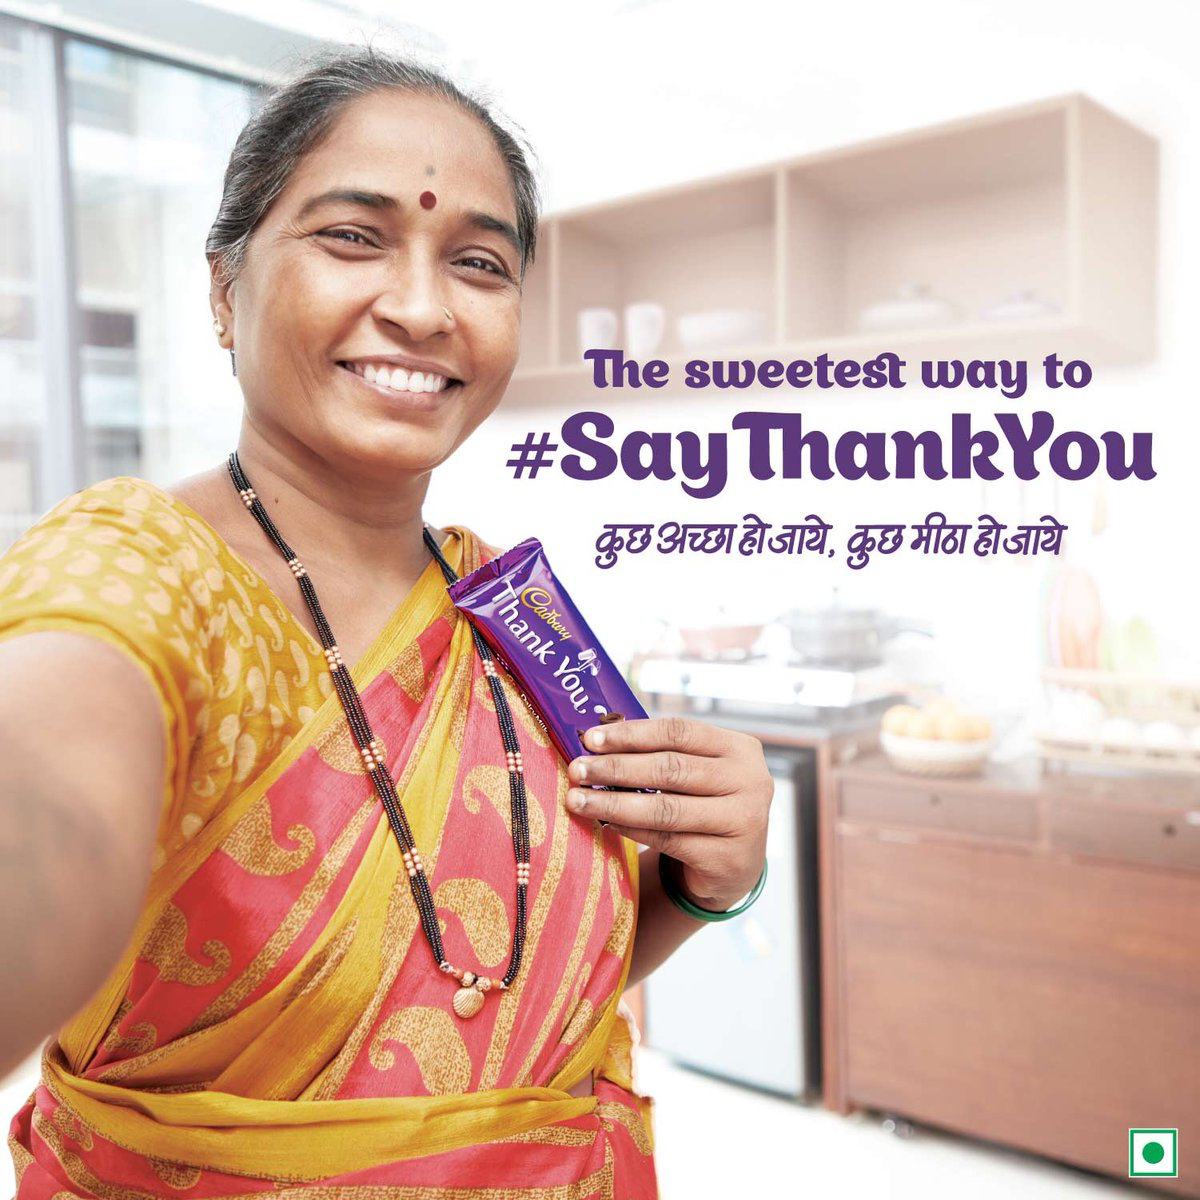 A little kindness goes a long way in helping those who make our lives easier. Every Cadbury Thank You bar helps provide health insurance to those who need it most. #SayThankYou #KuchAchhaHoJaayeKuchMeethaHoJaaye https://t.co/Du0BbQPTaK